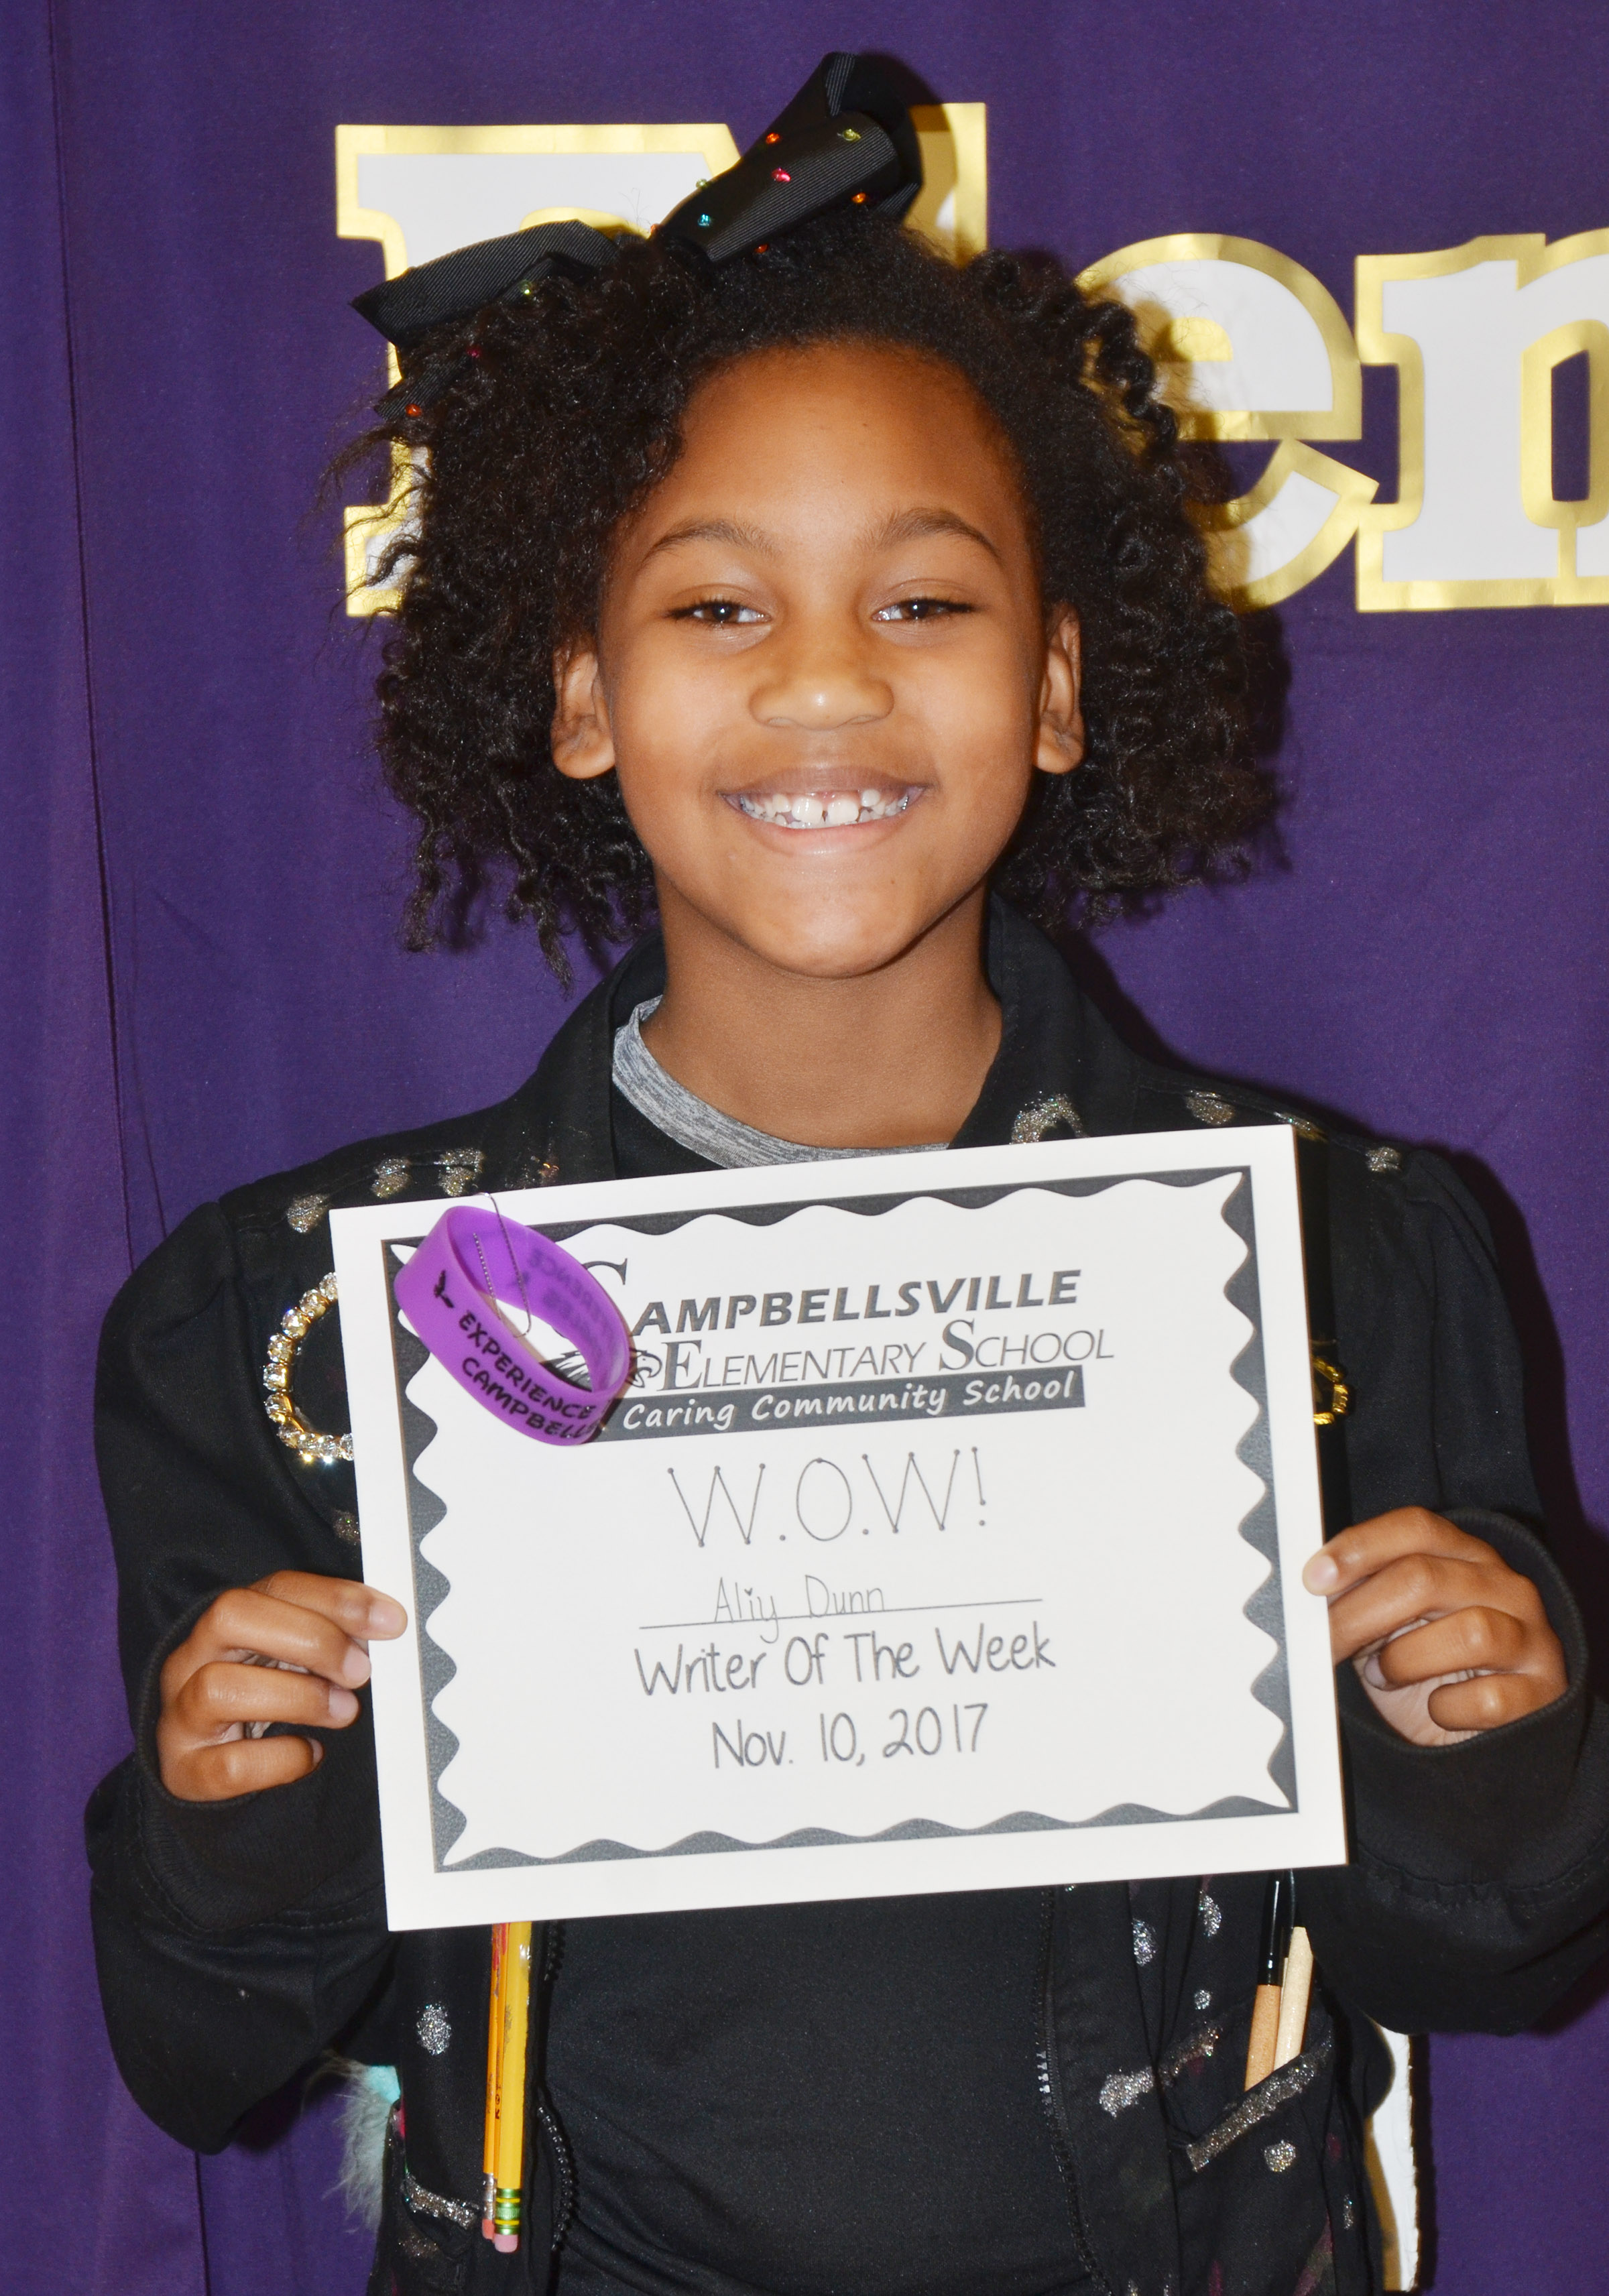 CES second-grader Ally Dunn is her school's Writer of the Week for the week of Nov. 6.